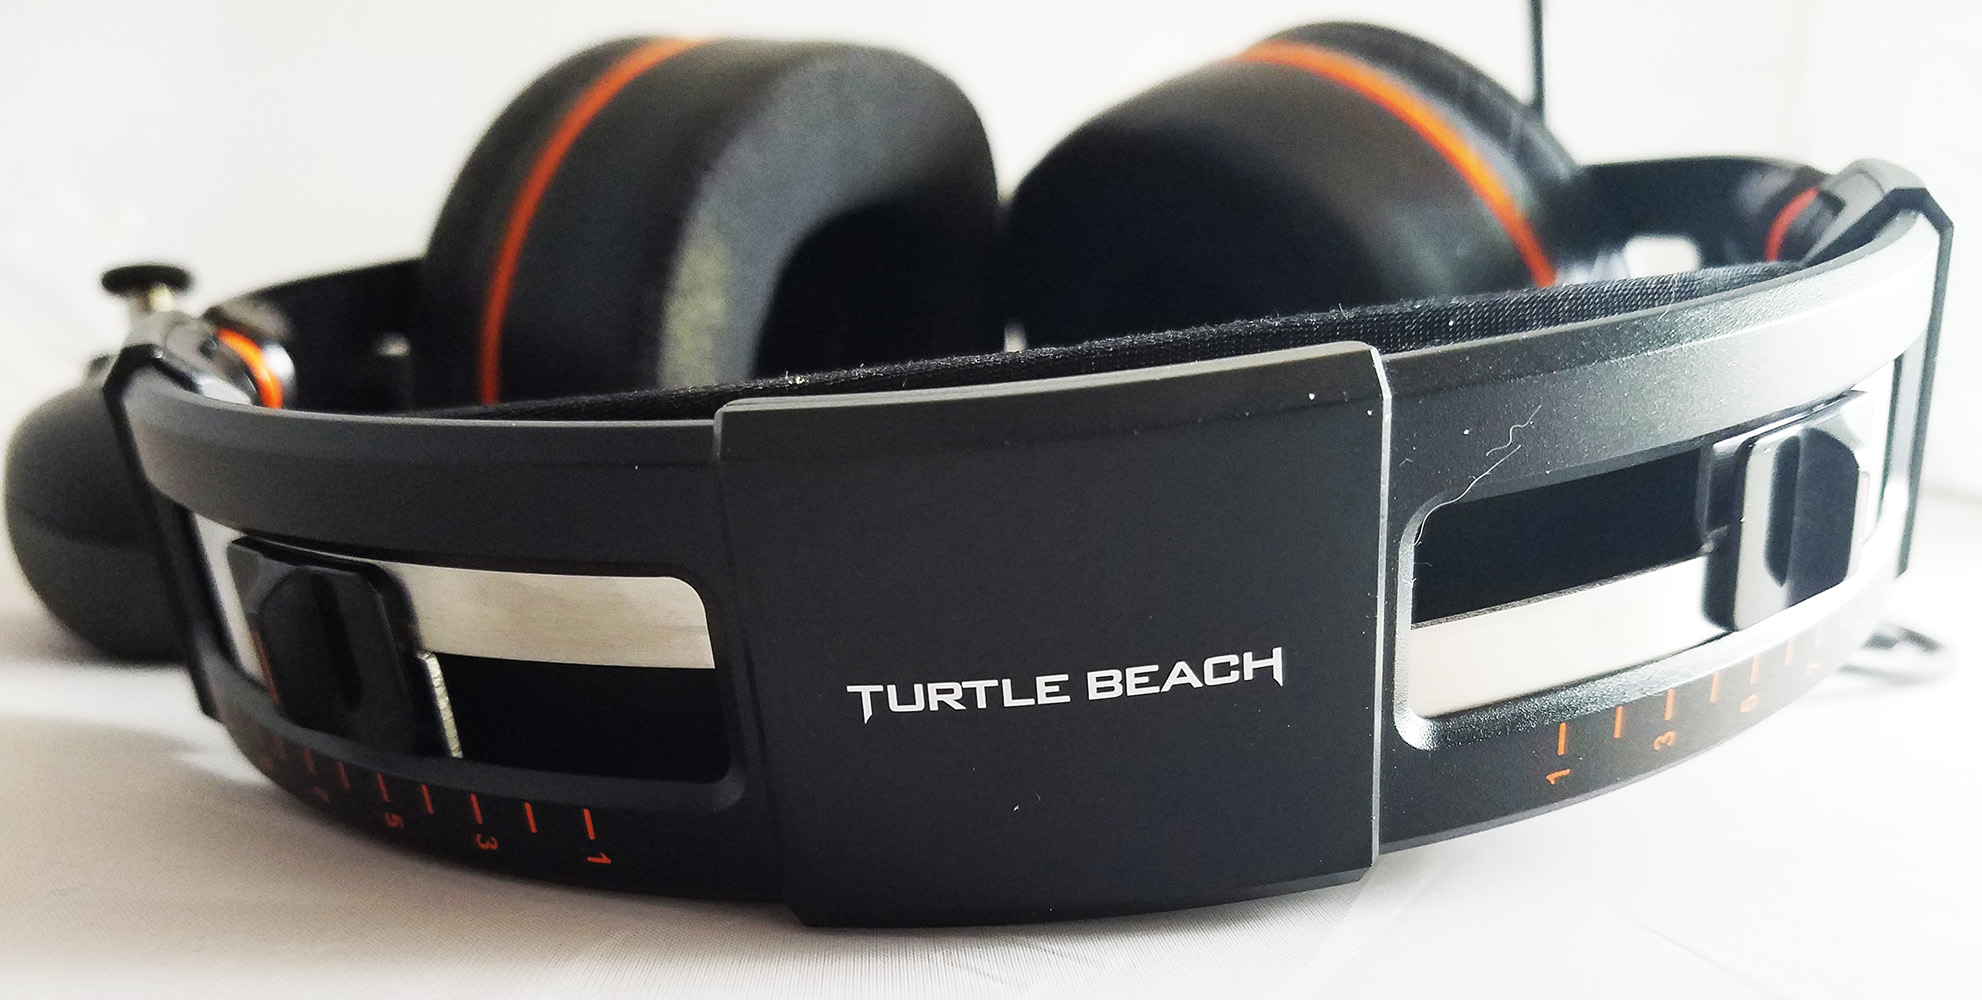 Turtle Beach Elite Pro tension control